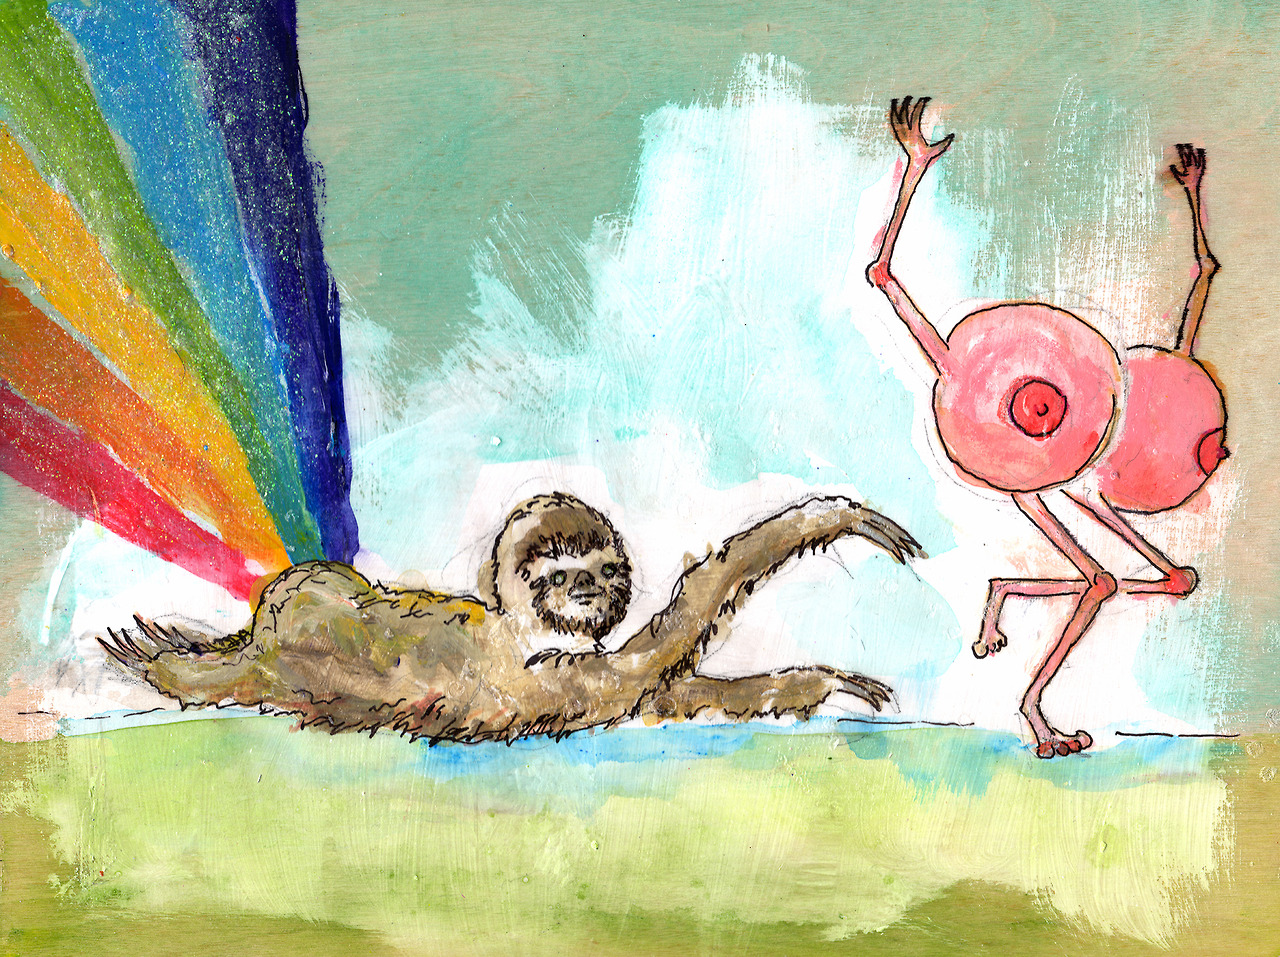 12/17/13 -  Down Low, Too Slow.    I'm shedding a solitary tear because this is probably the last pair of boobs I'll draw in 2013. Unless of course someone wants me to draw a pair as part of a kickstarter reward. Anyway, have a rainbow-farting sloth chasing after a pair of boobs. Happy Tuesday!    Prints! -  http://society6.com/taylorwinder